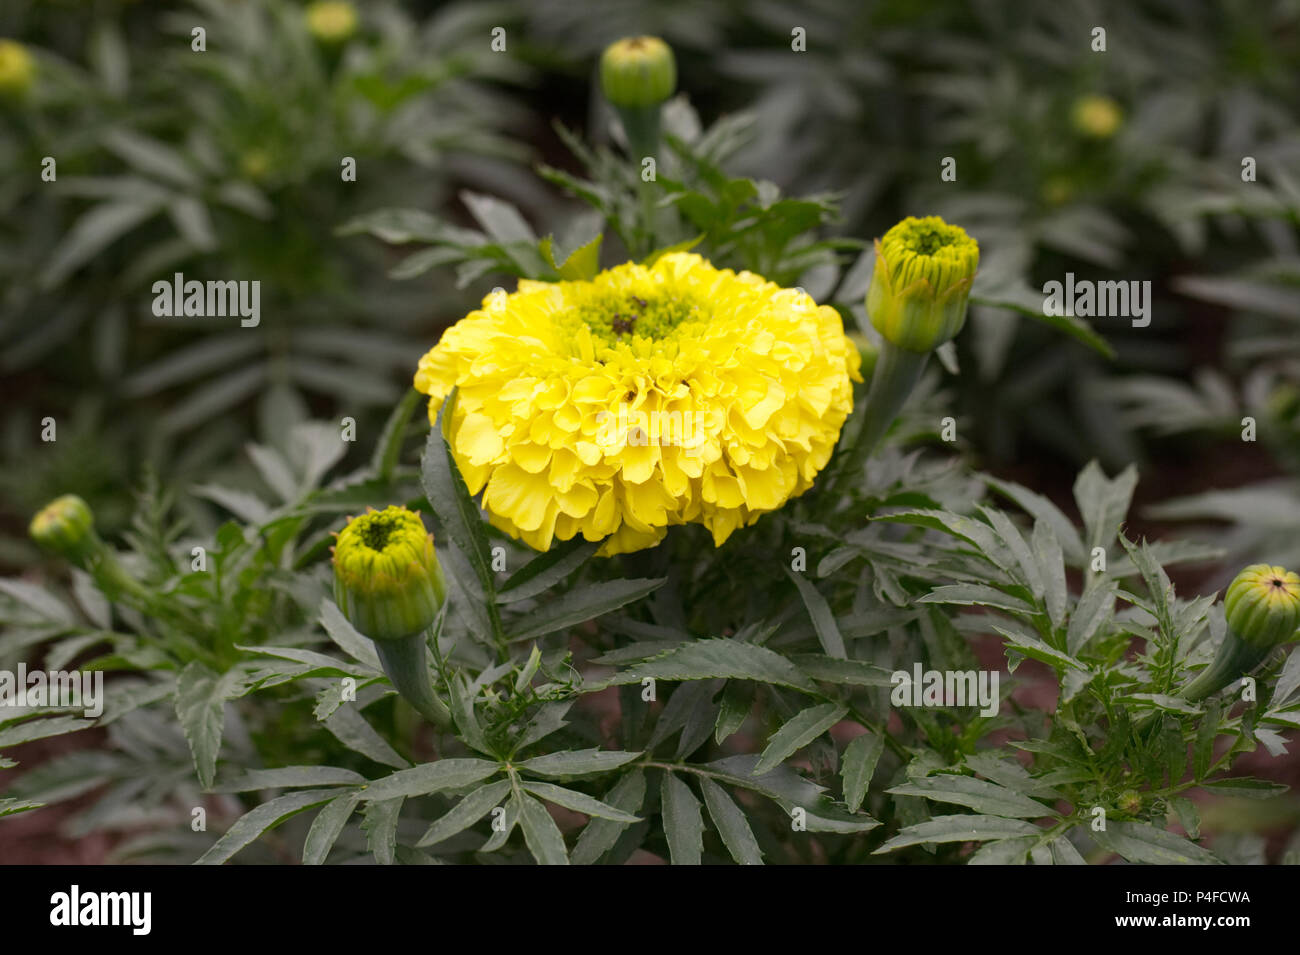 Tagetes erecta Inca II Yellow flowers. - Stock Image